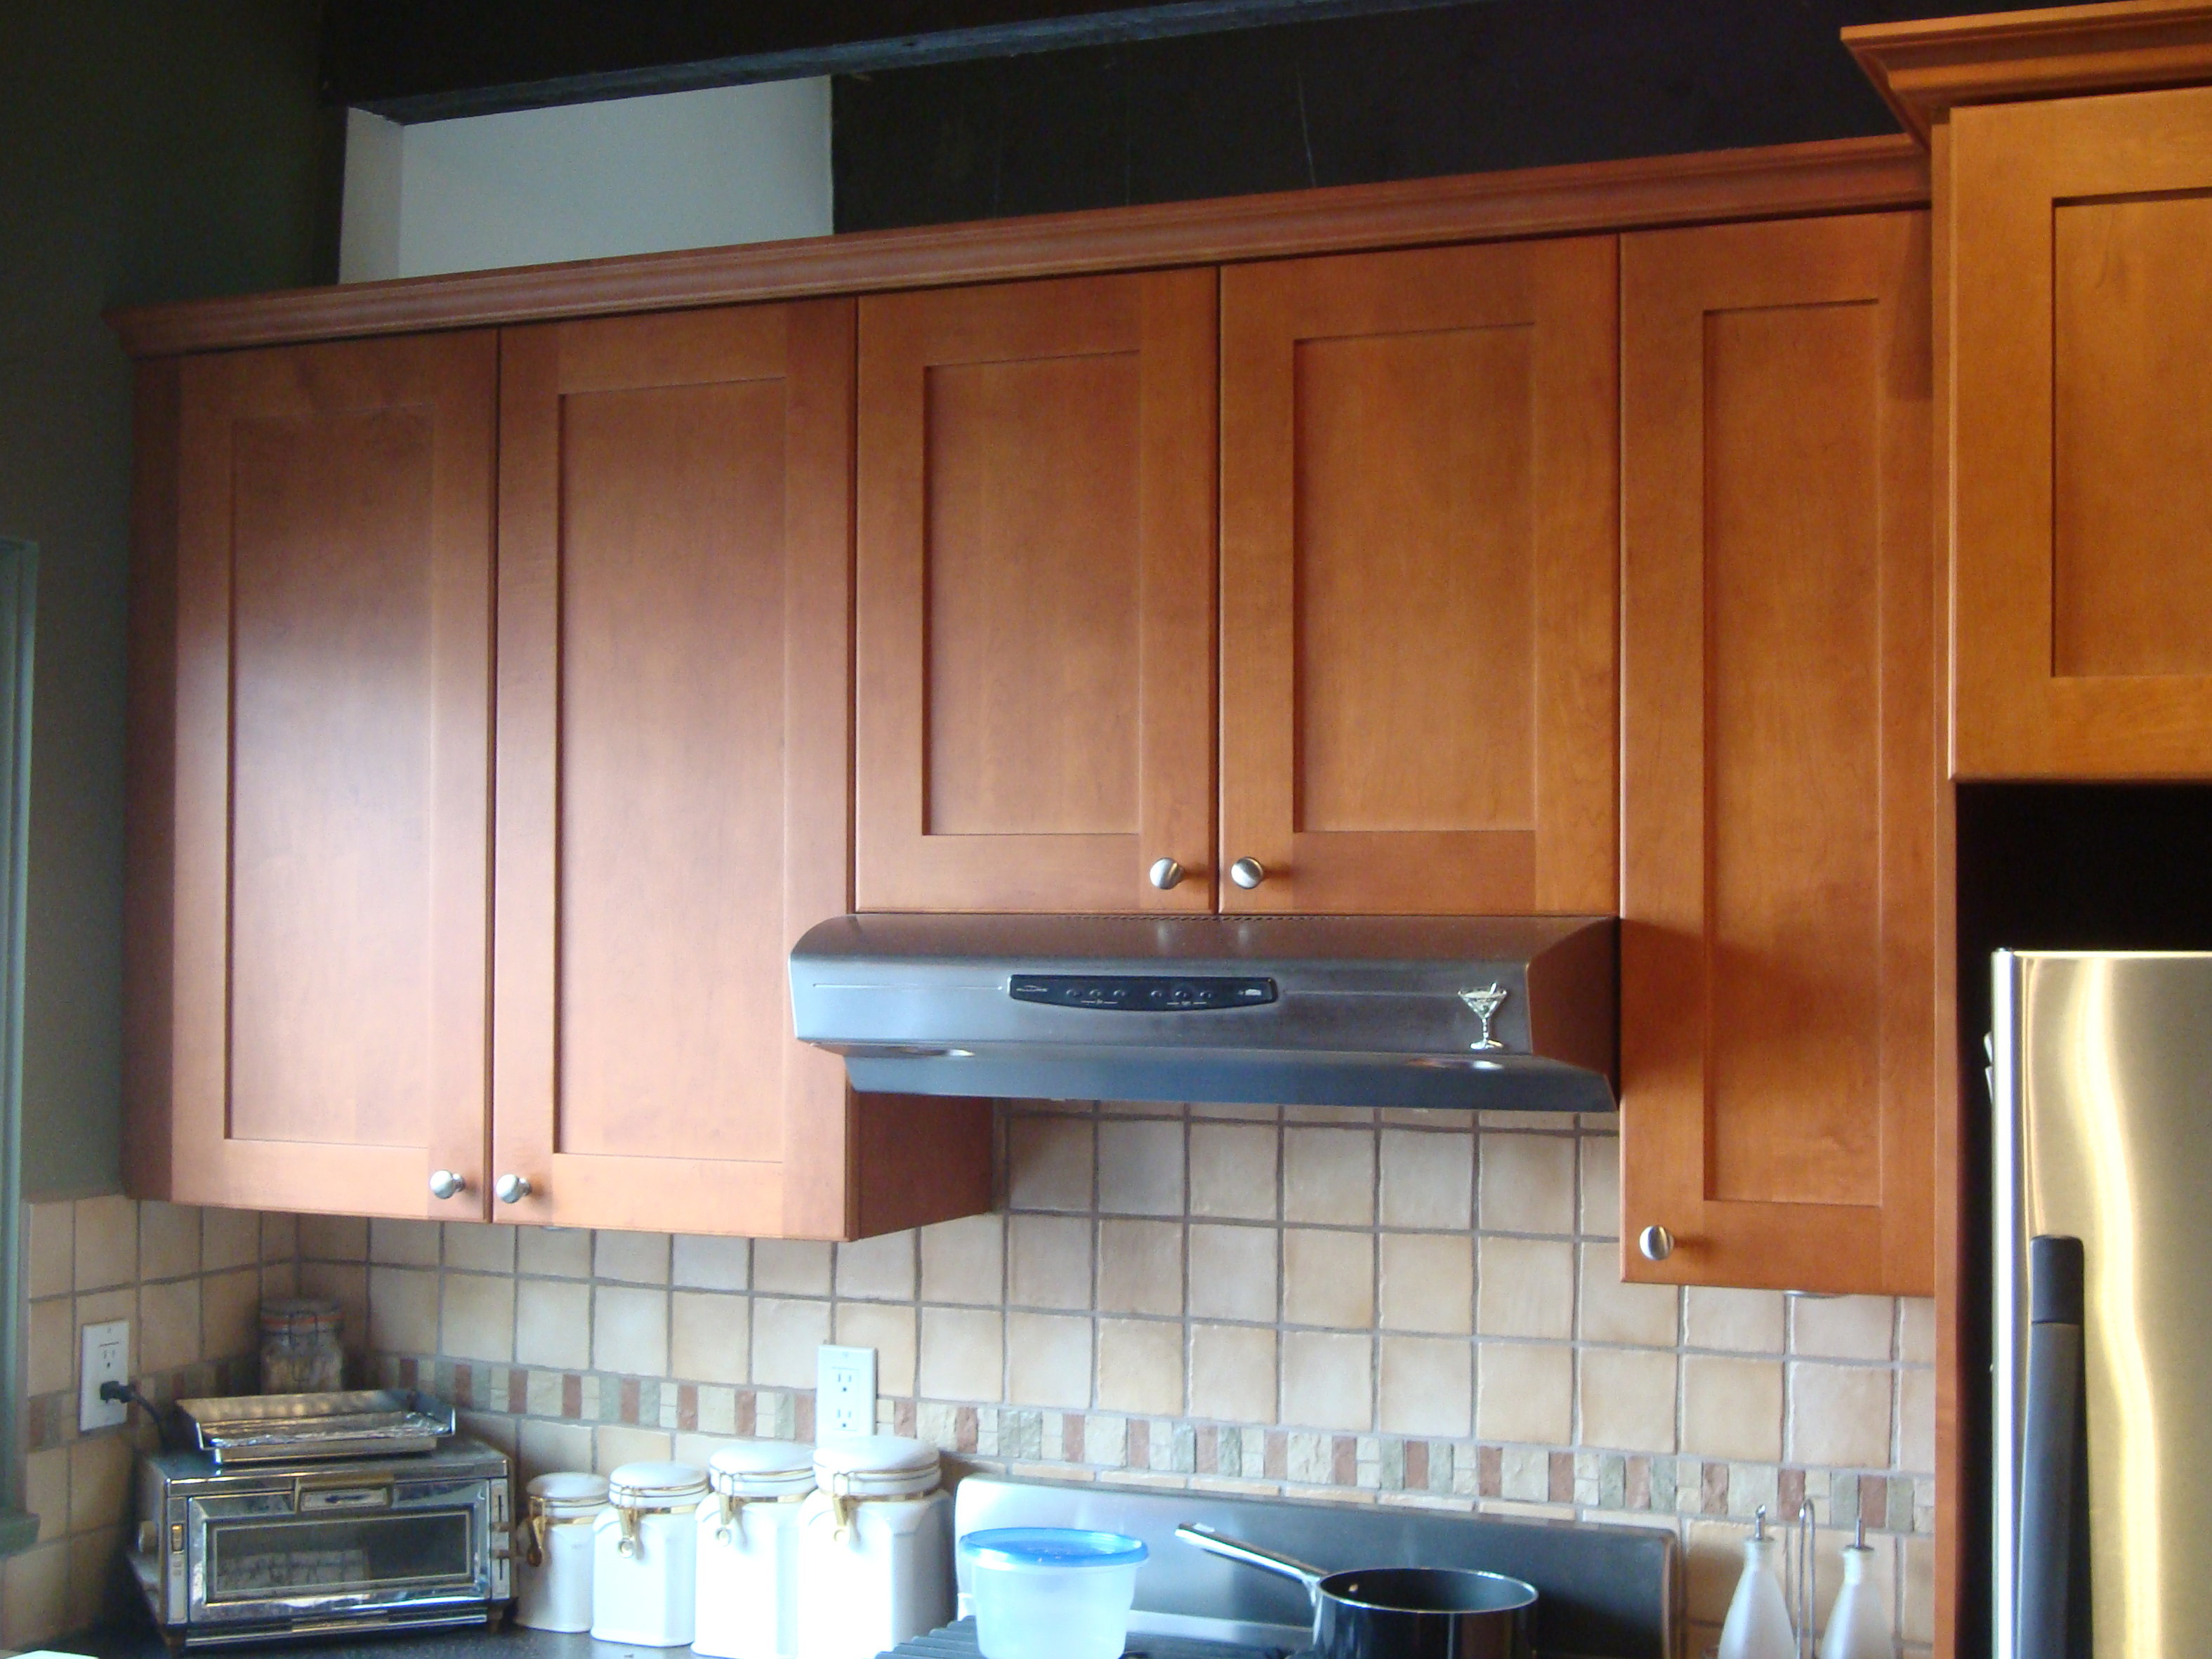 New construction project springridge construction for California kitchen cabinets abbotsford